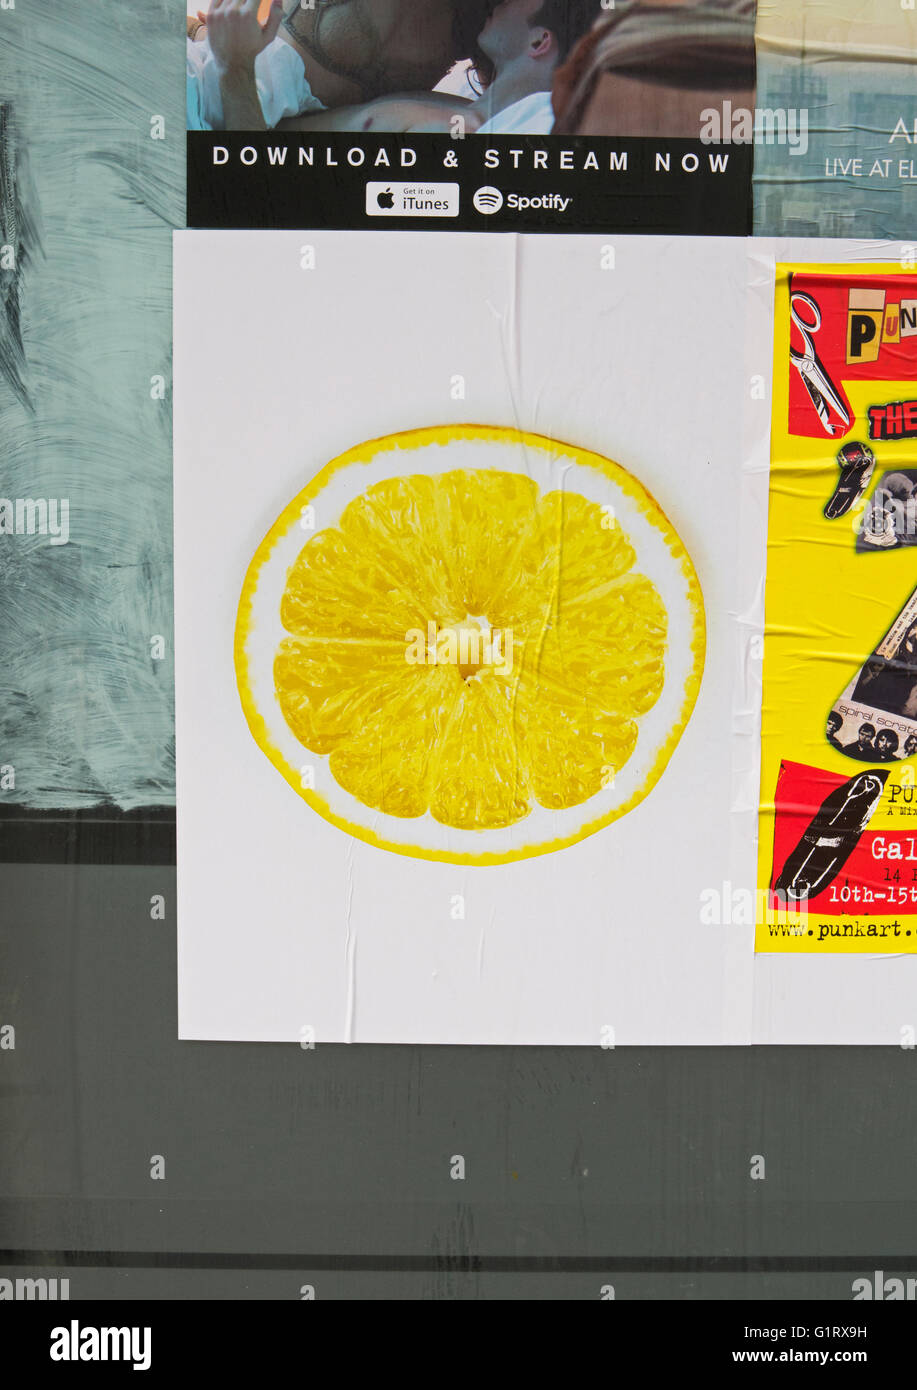 The cryptic lemon slice poster announcing the release of a new song by the Stone Roses. - Stock Image